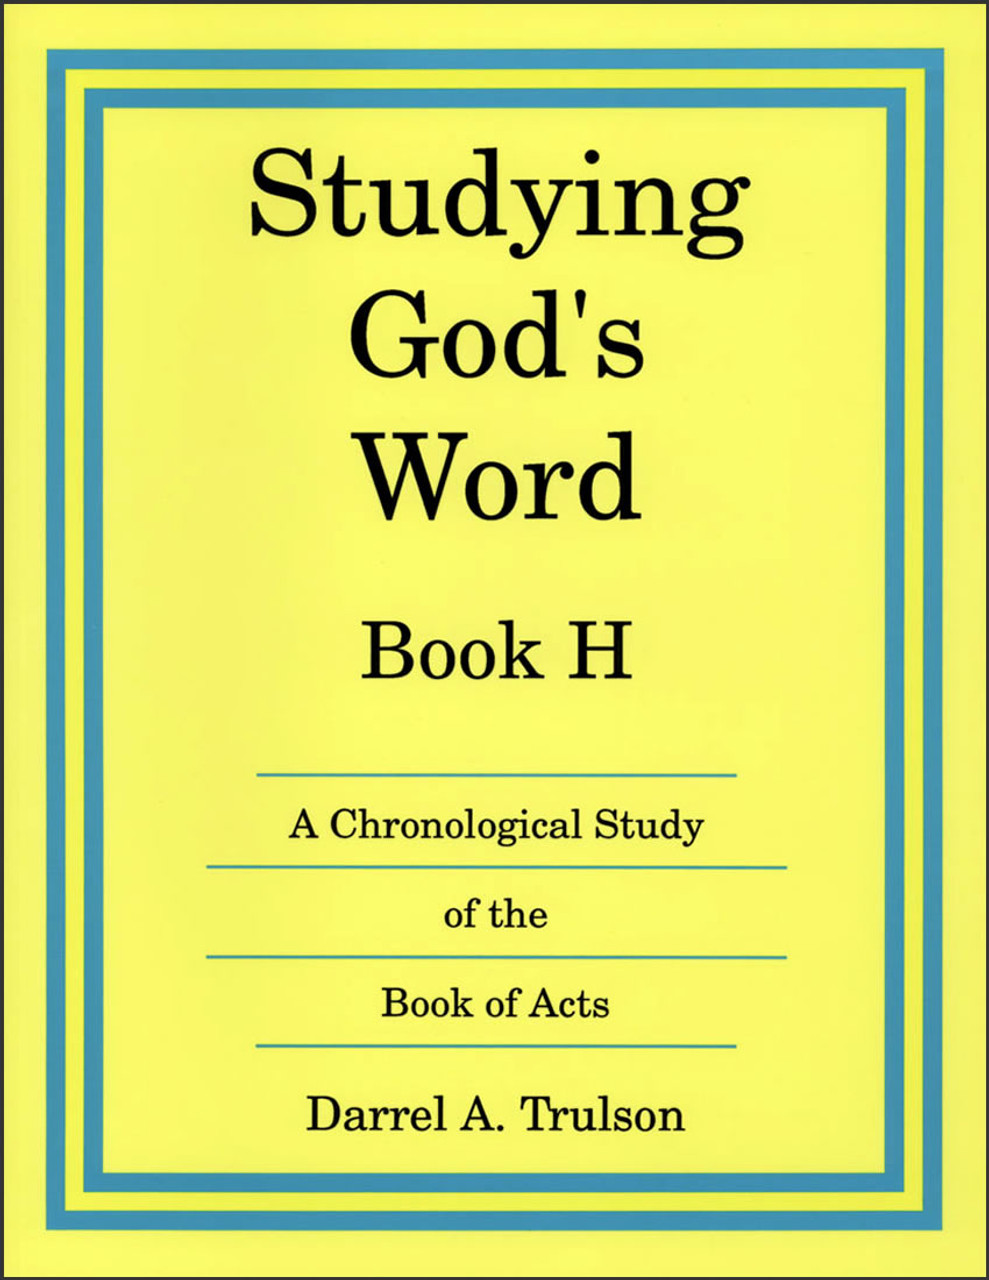 Studying God's Word Book H: Acts